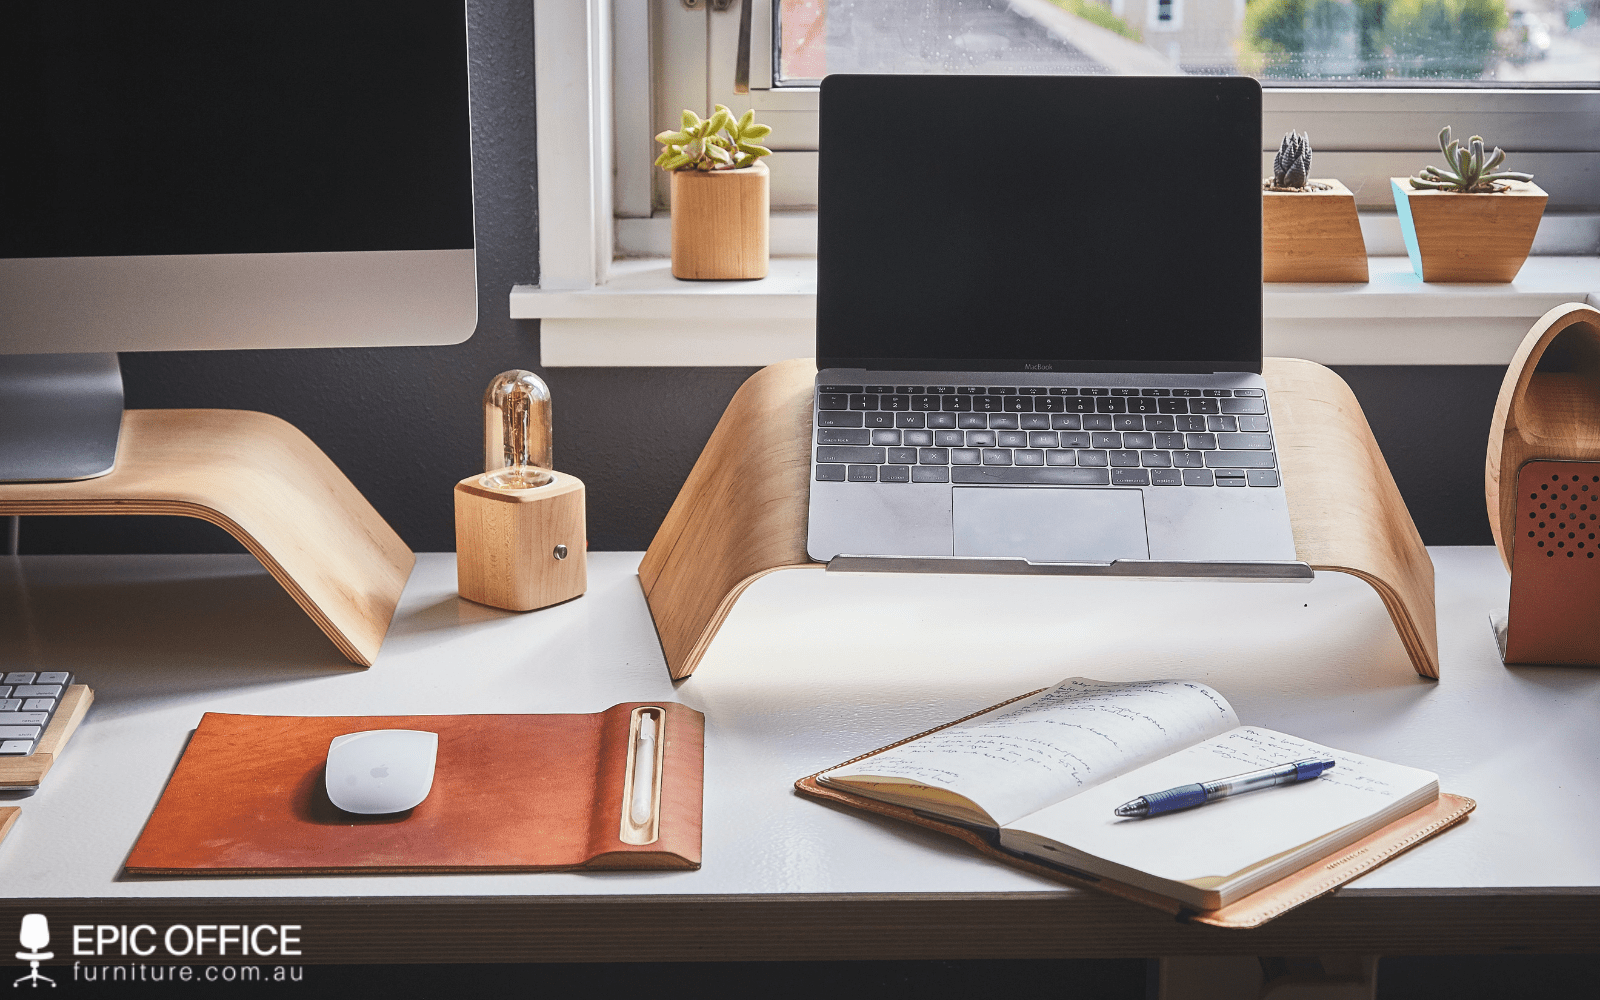 5 Home Office Deductions You Should Know About